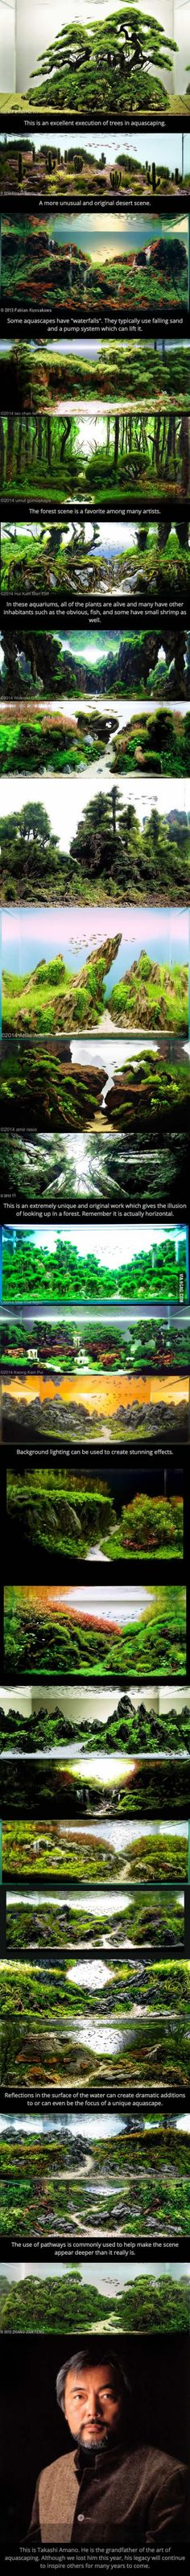 These Are Aquariums. This Is The Art Of Aquascaping.